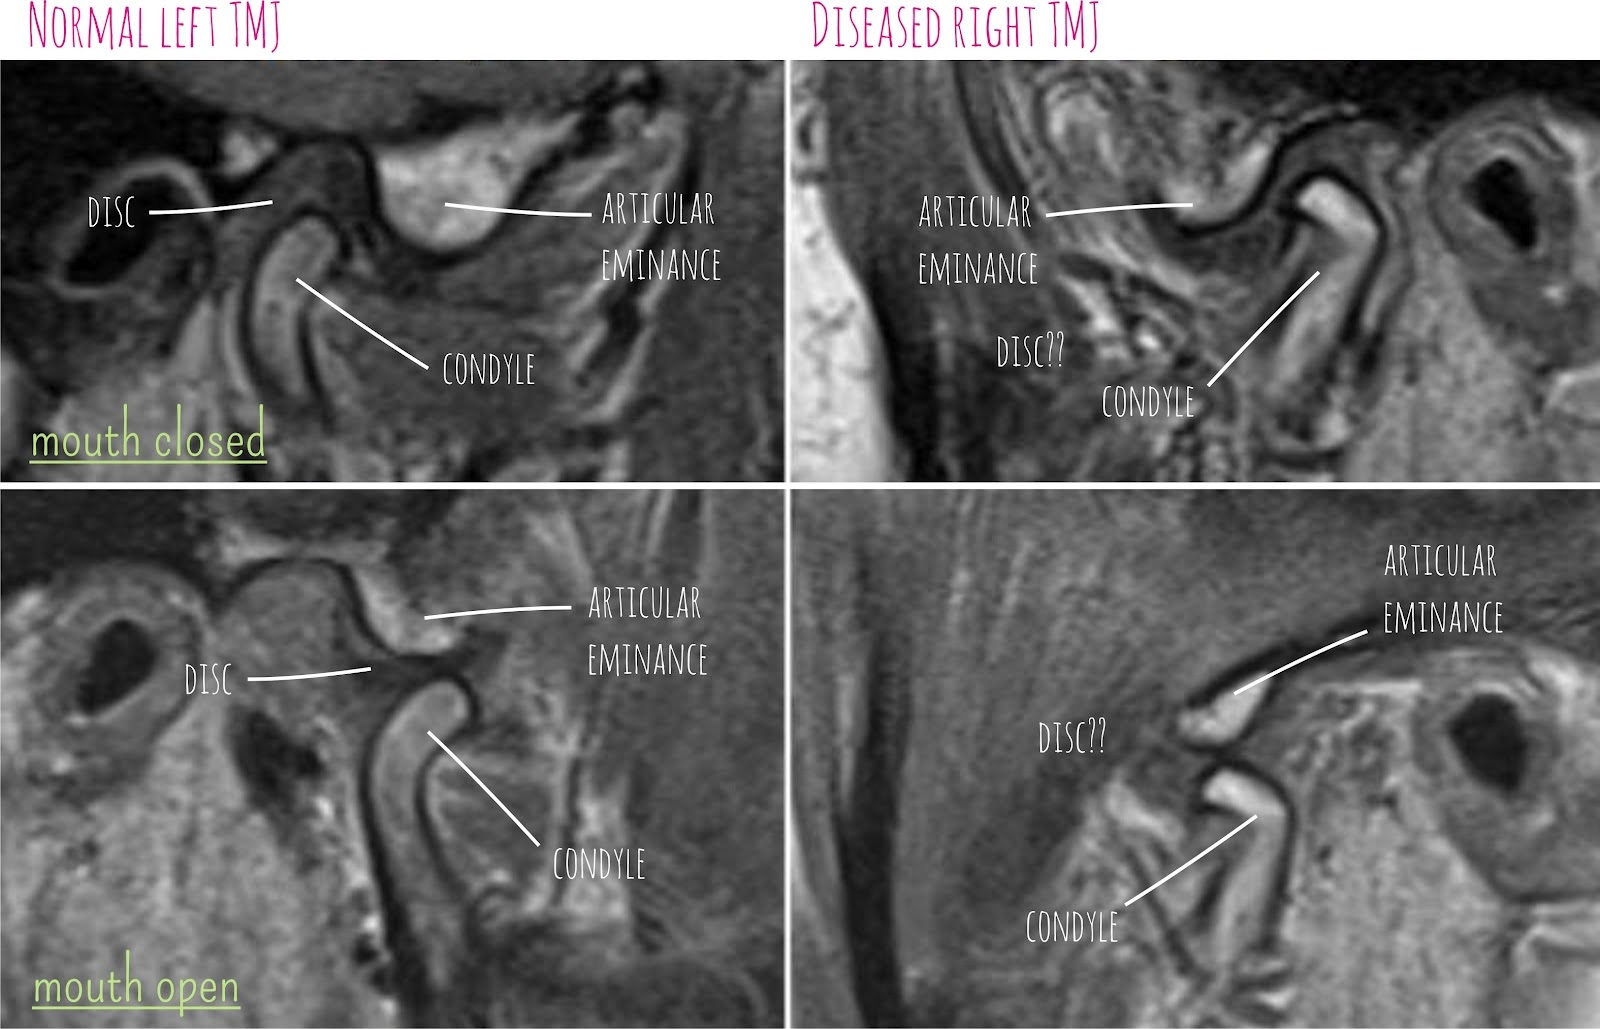 TMJ MRI scan anatomy | Radiology Anatomy Images